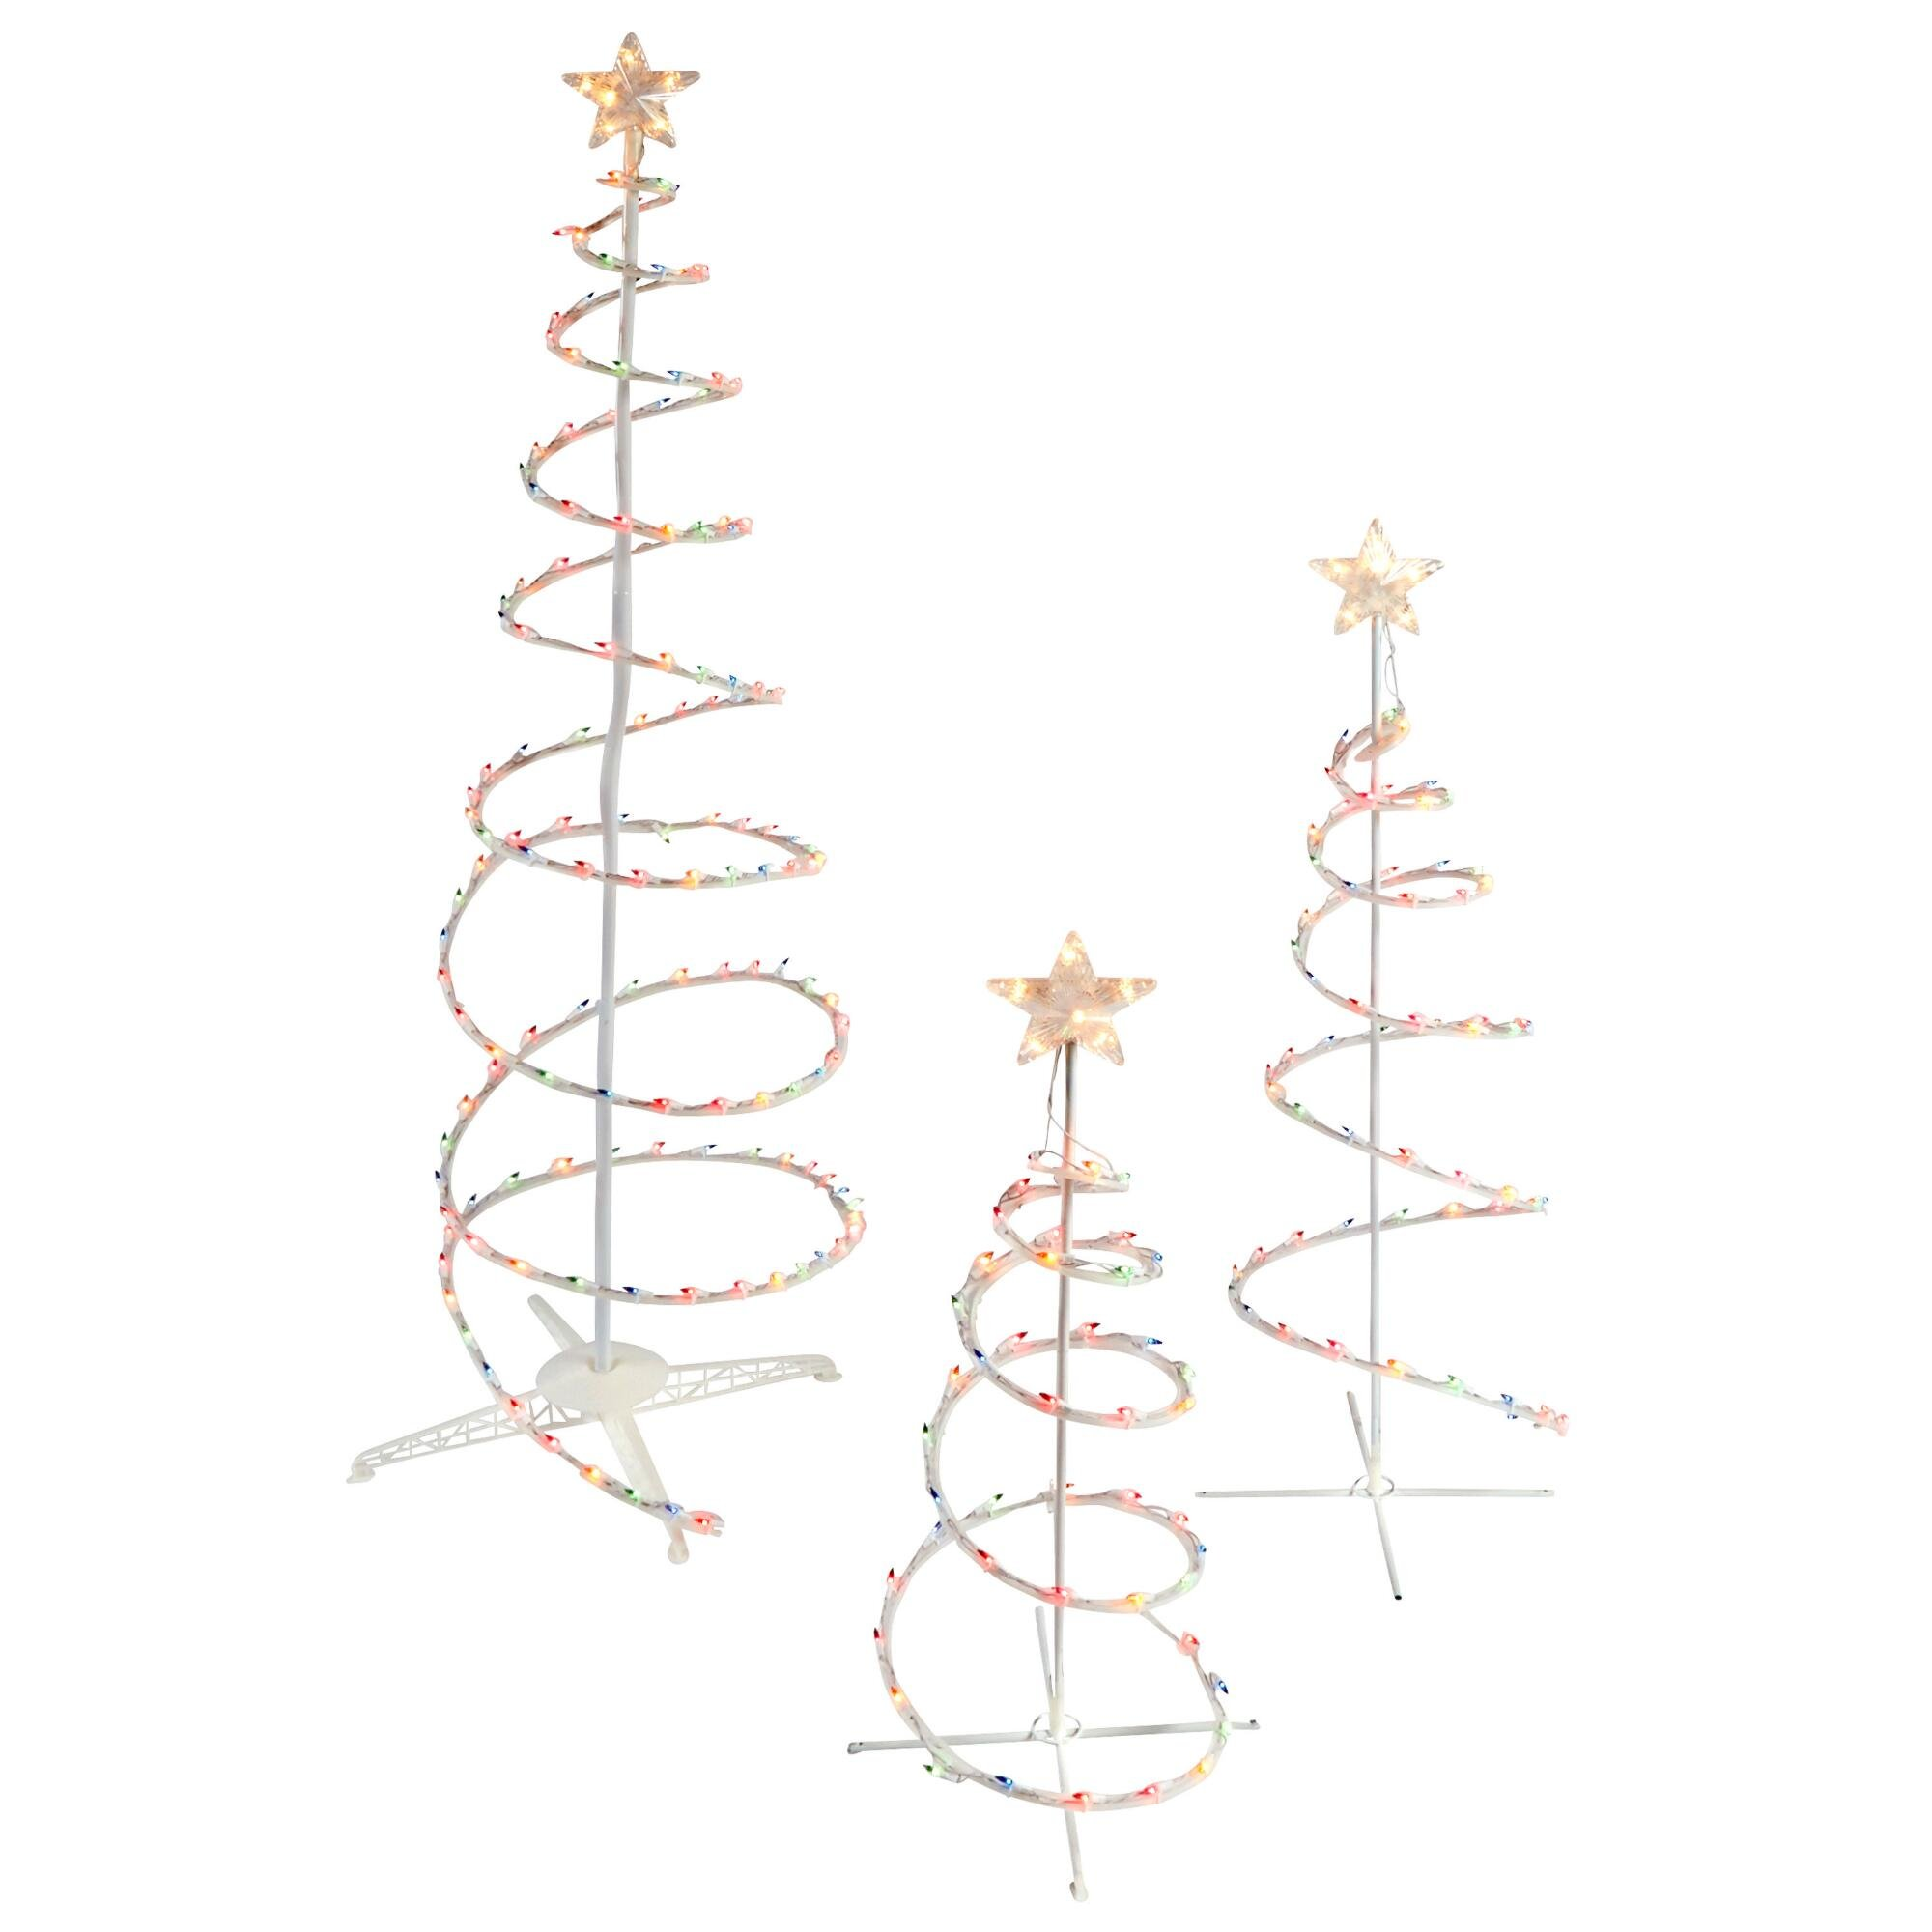 Set of 3 Lighted Spiral Christmas Trees - 3 Ft 4 Ft and 6 Ft - 270 Multi-Colored Lights - Winter Wonder Lane